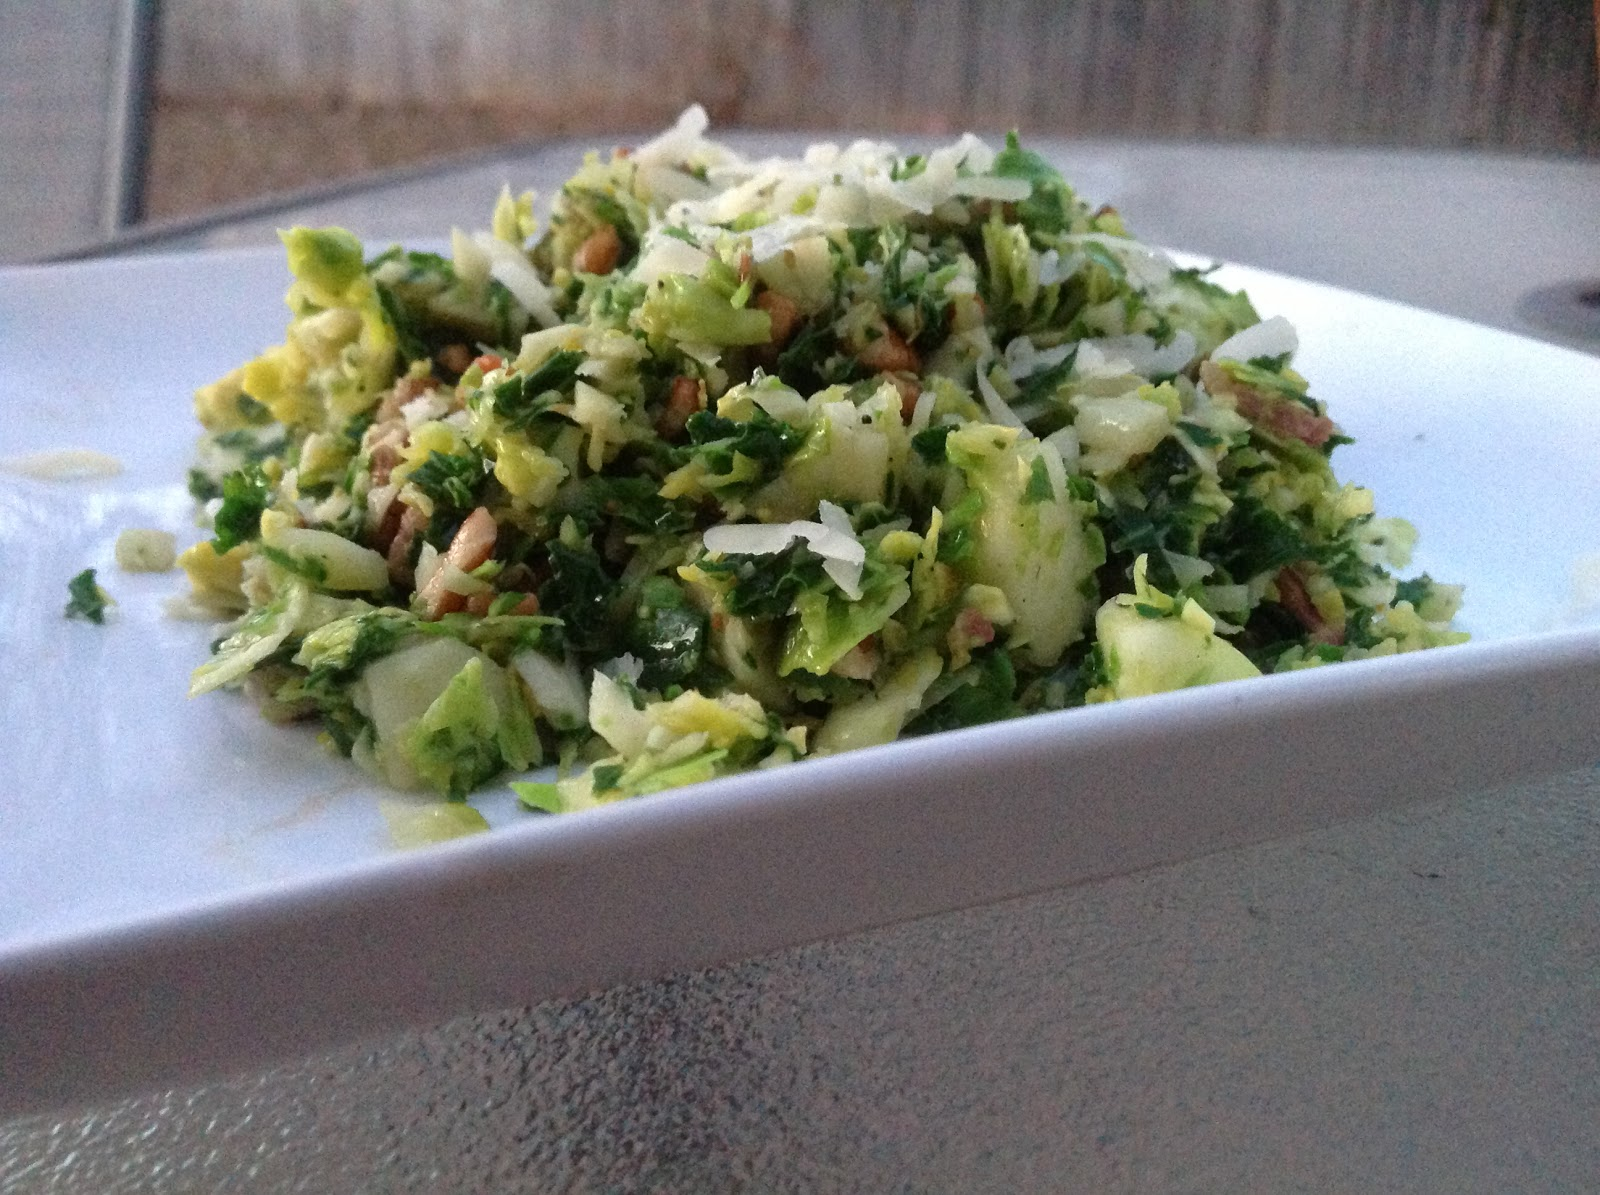 ... brussel sprout recipe by chopping the brussels sprouts and kale into